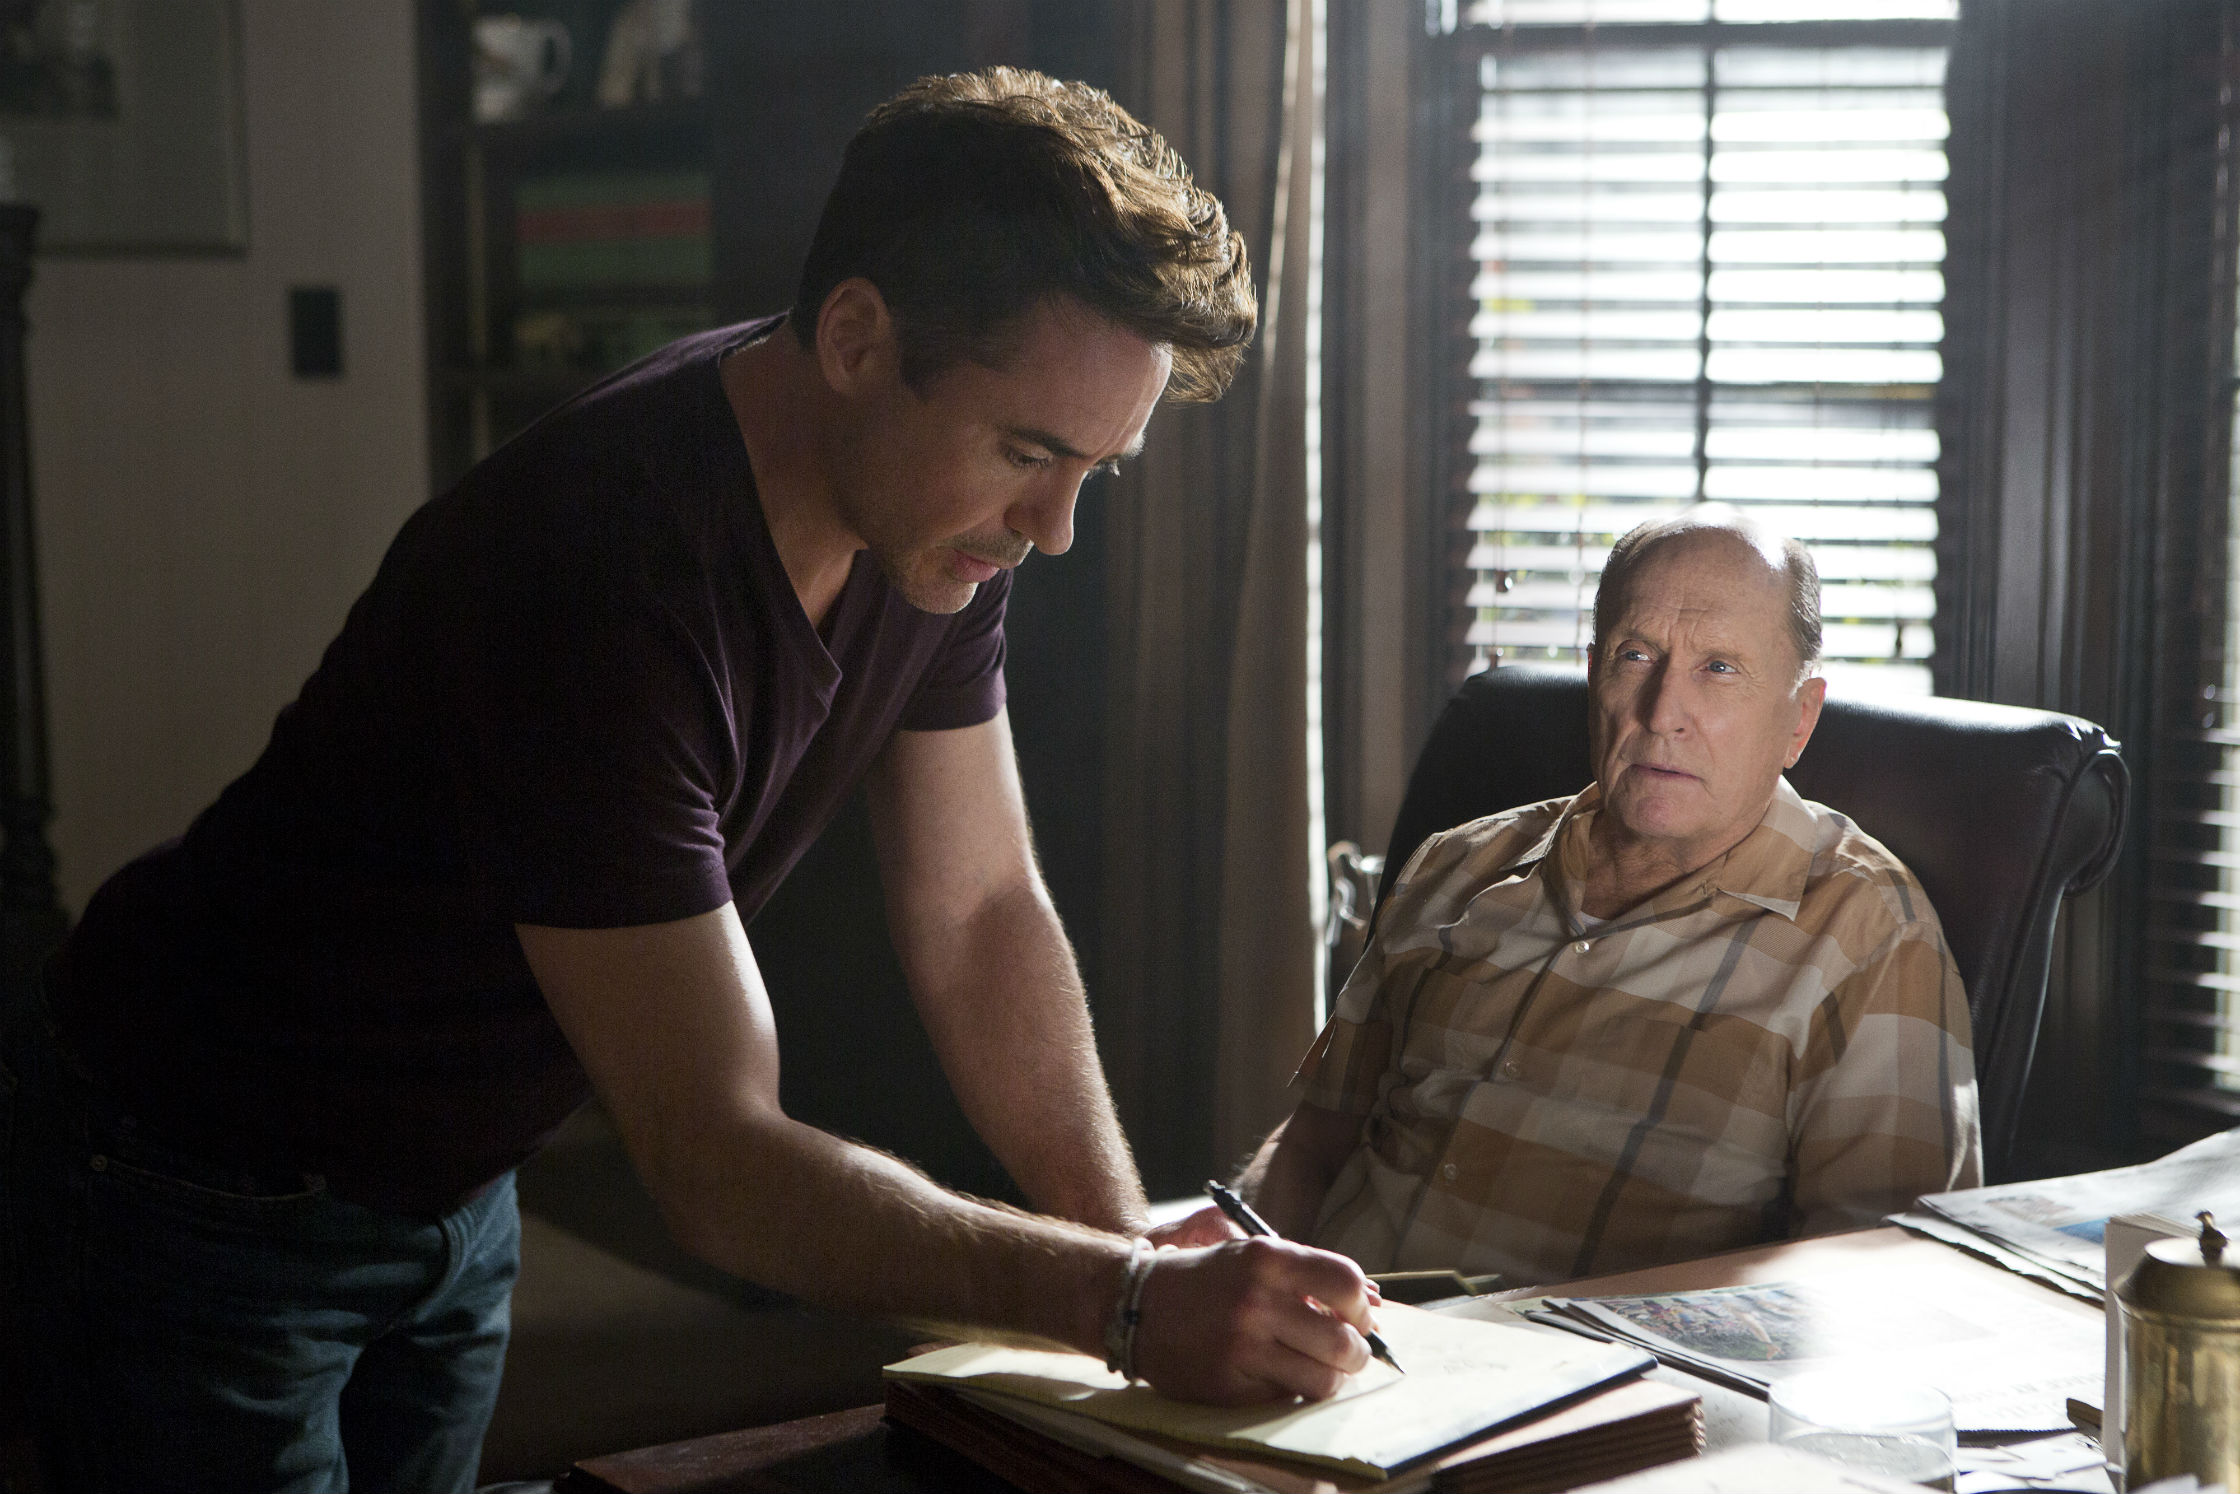 """All our families are f-ed up:"" Director David Dobkin on his Duvall vs. Downey drama 'The Judge'"